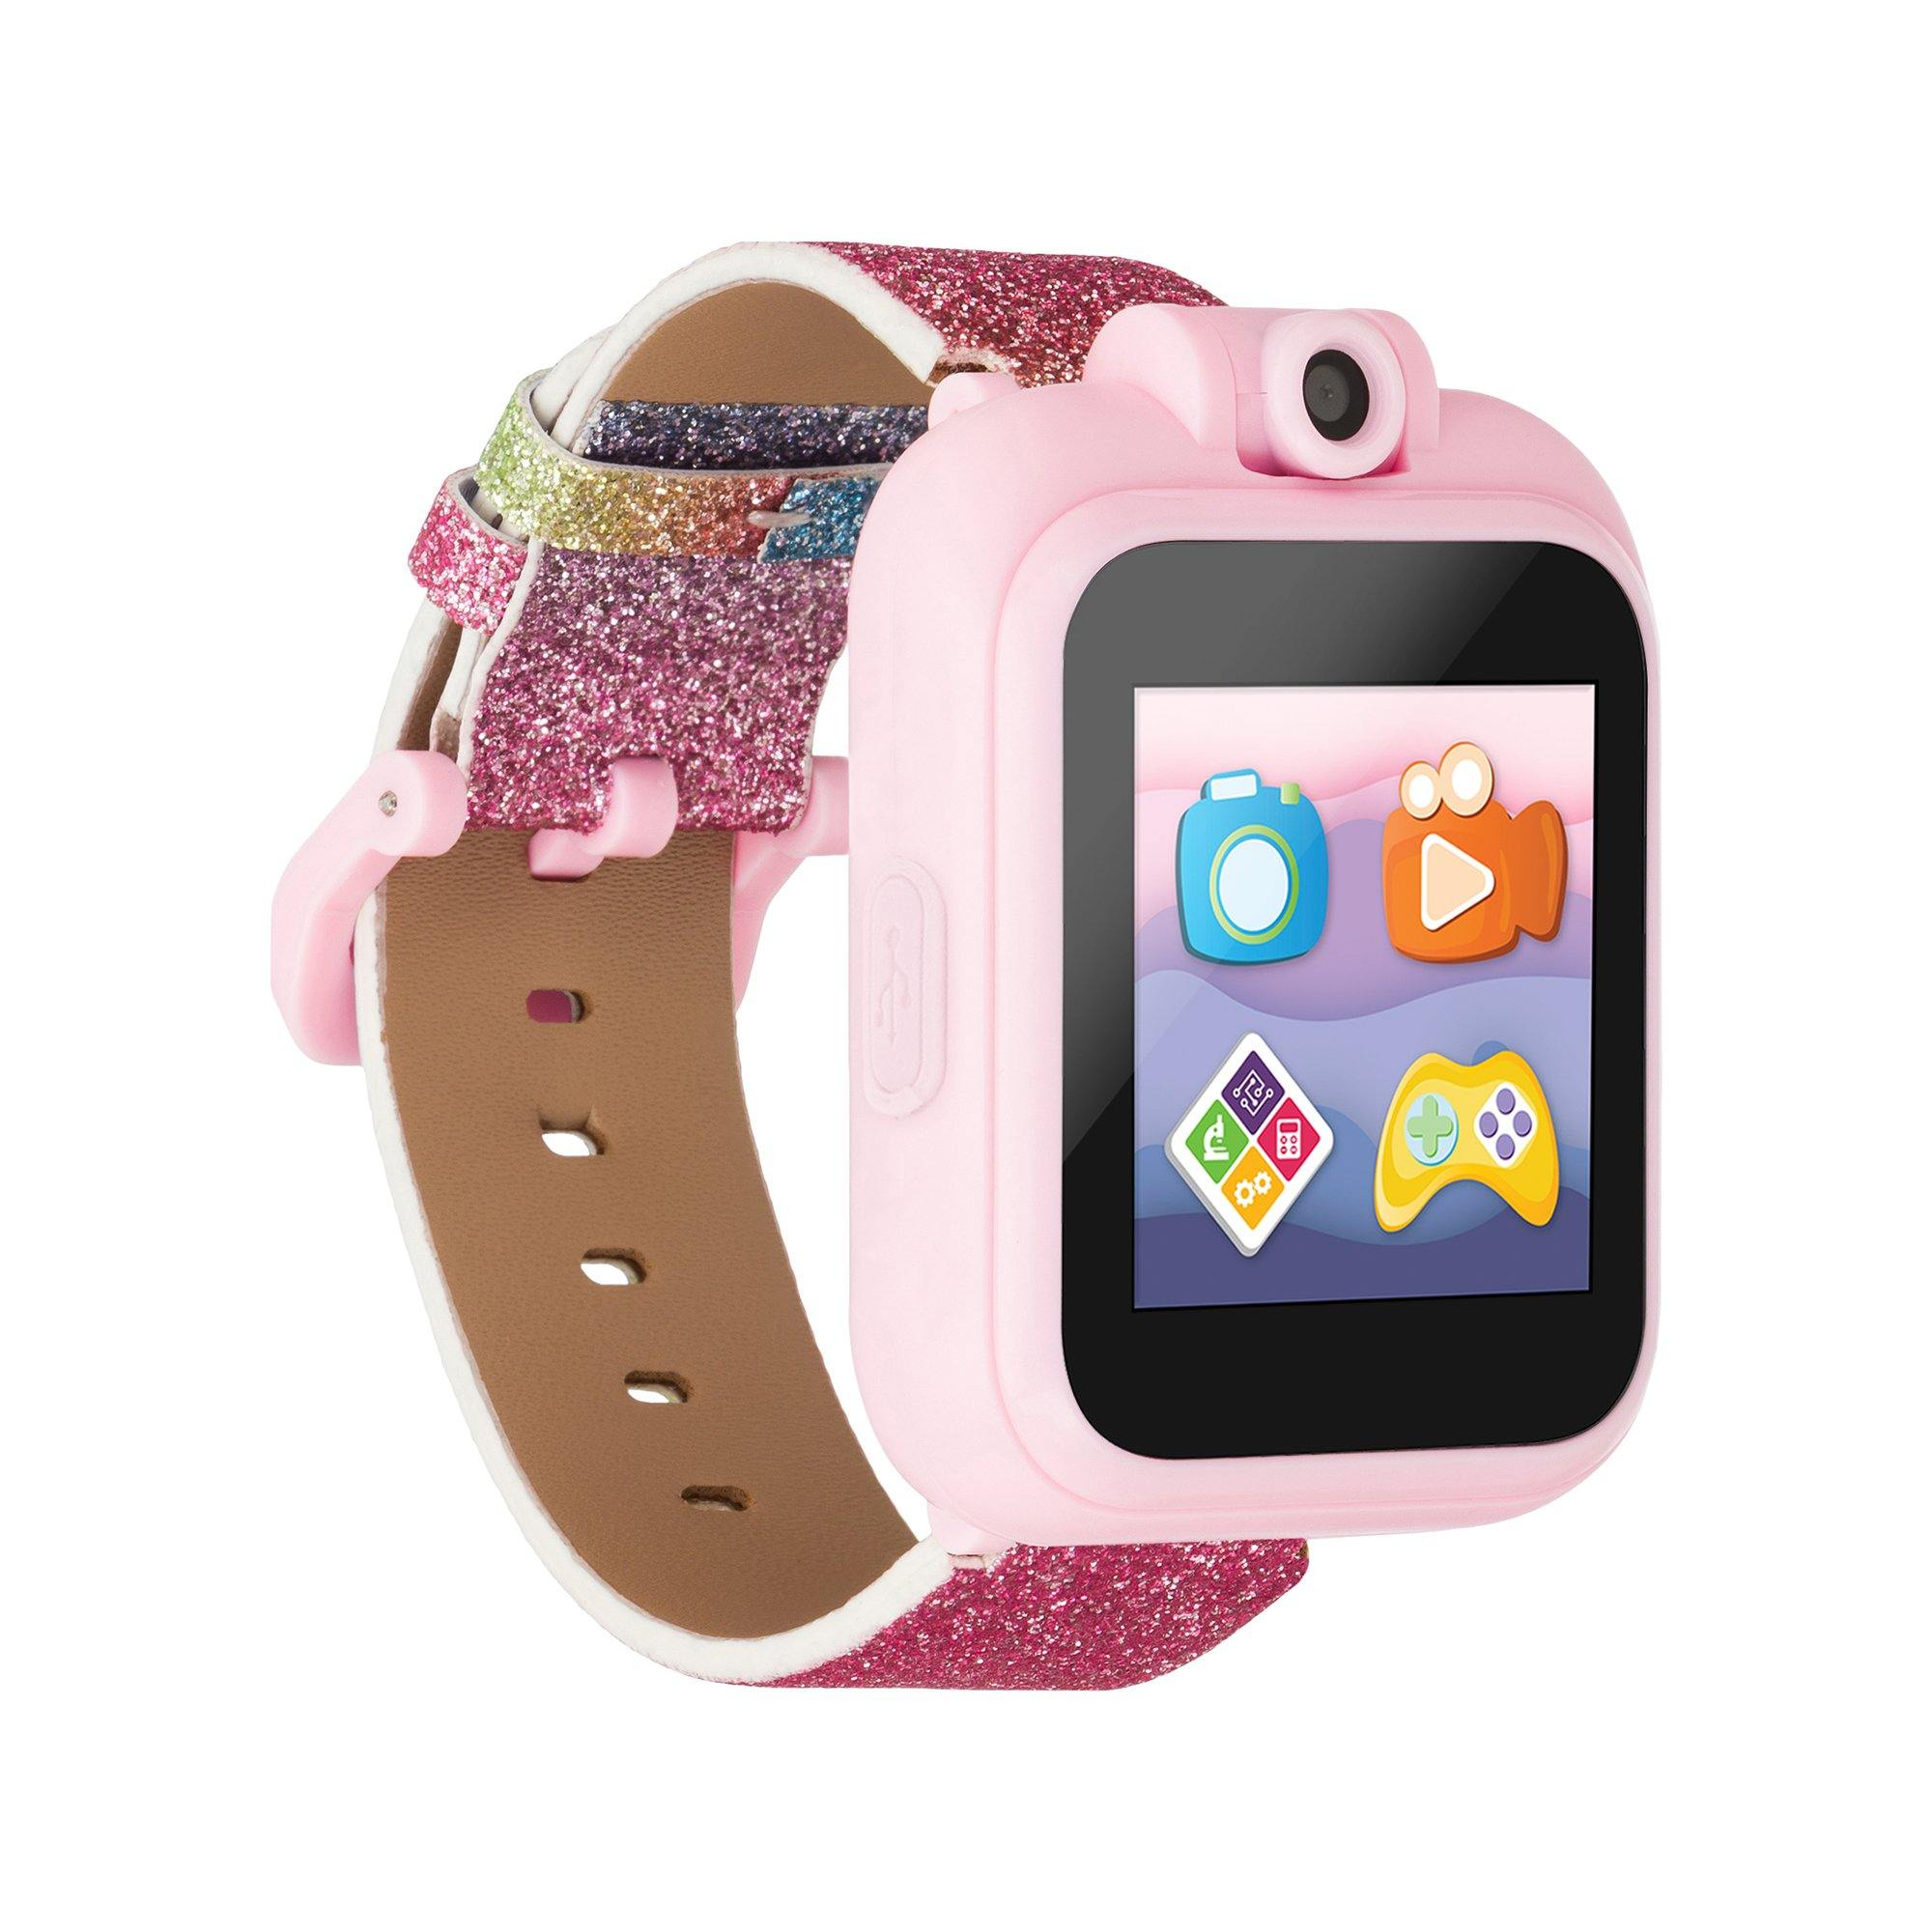 PlayZoom 2 Kids Smartwatch: Rainbow Glitter